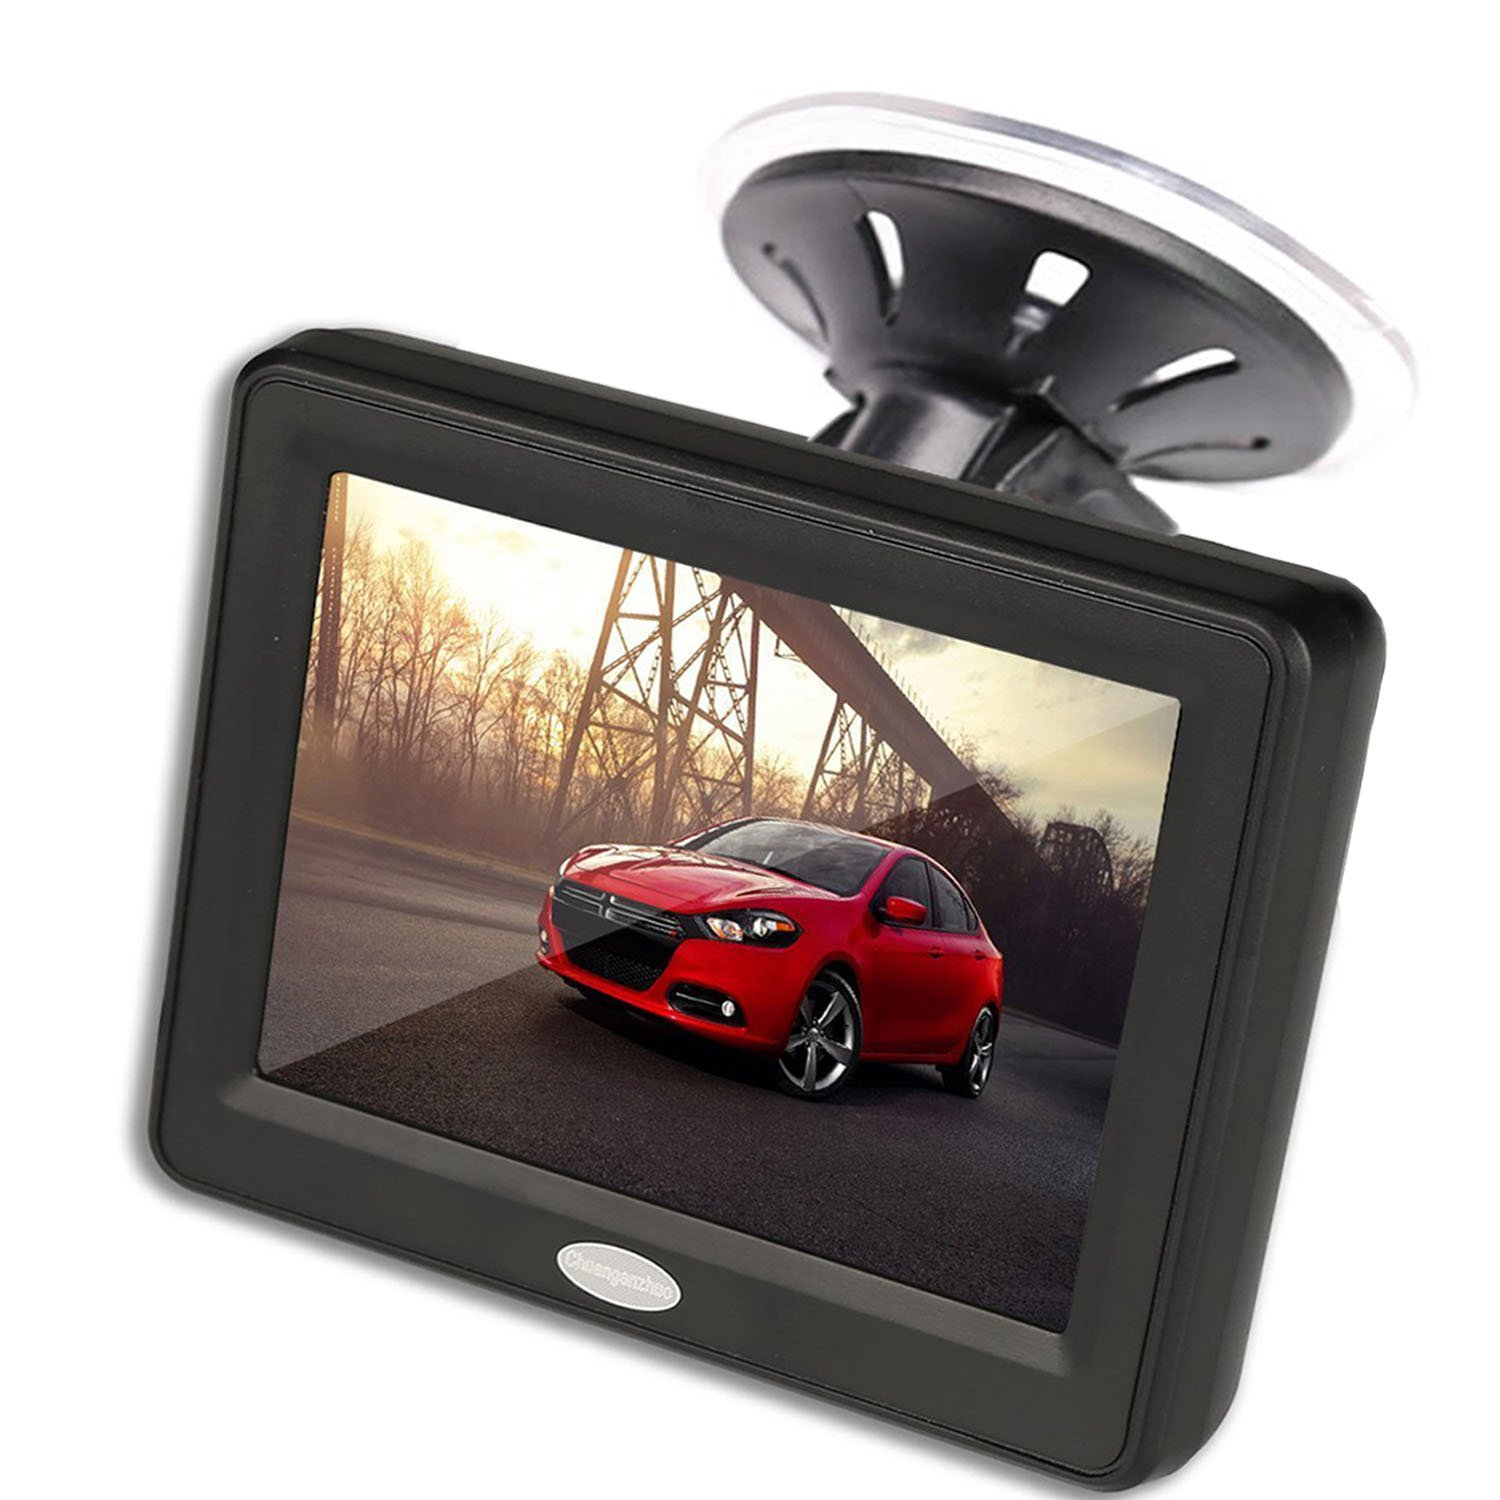 3.5'' Inch TFT LCD Car Color Rear View Monitor Screen for Parking Rear View Backup Camera With 2 Optional Bracket Chuanganzhuo CAZMN014